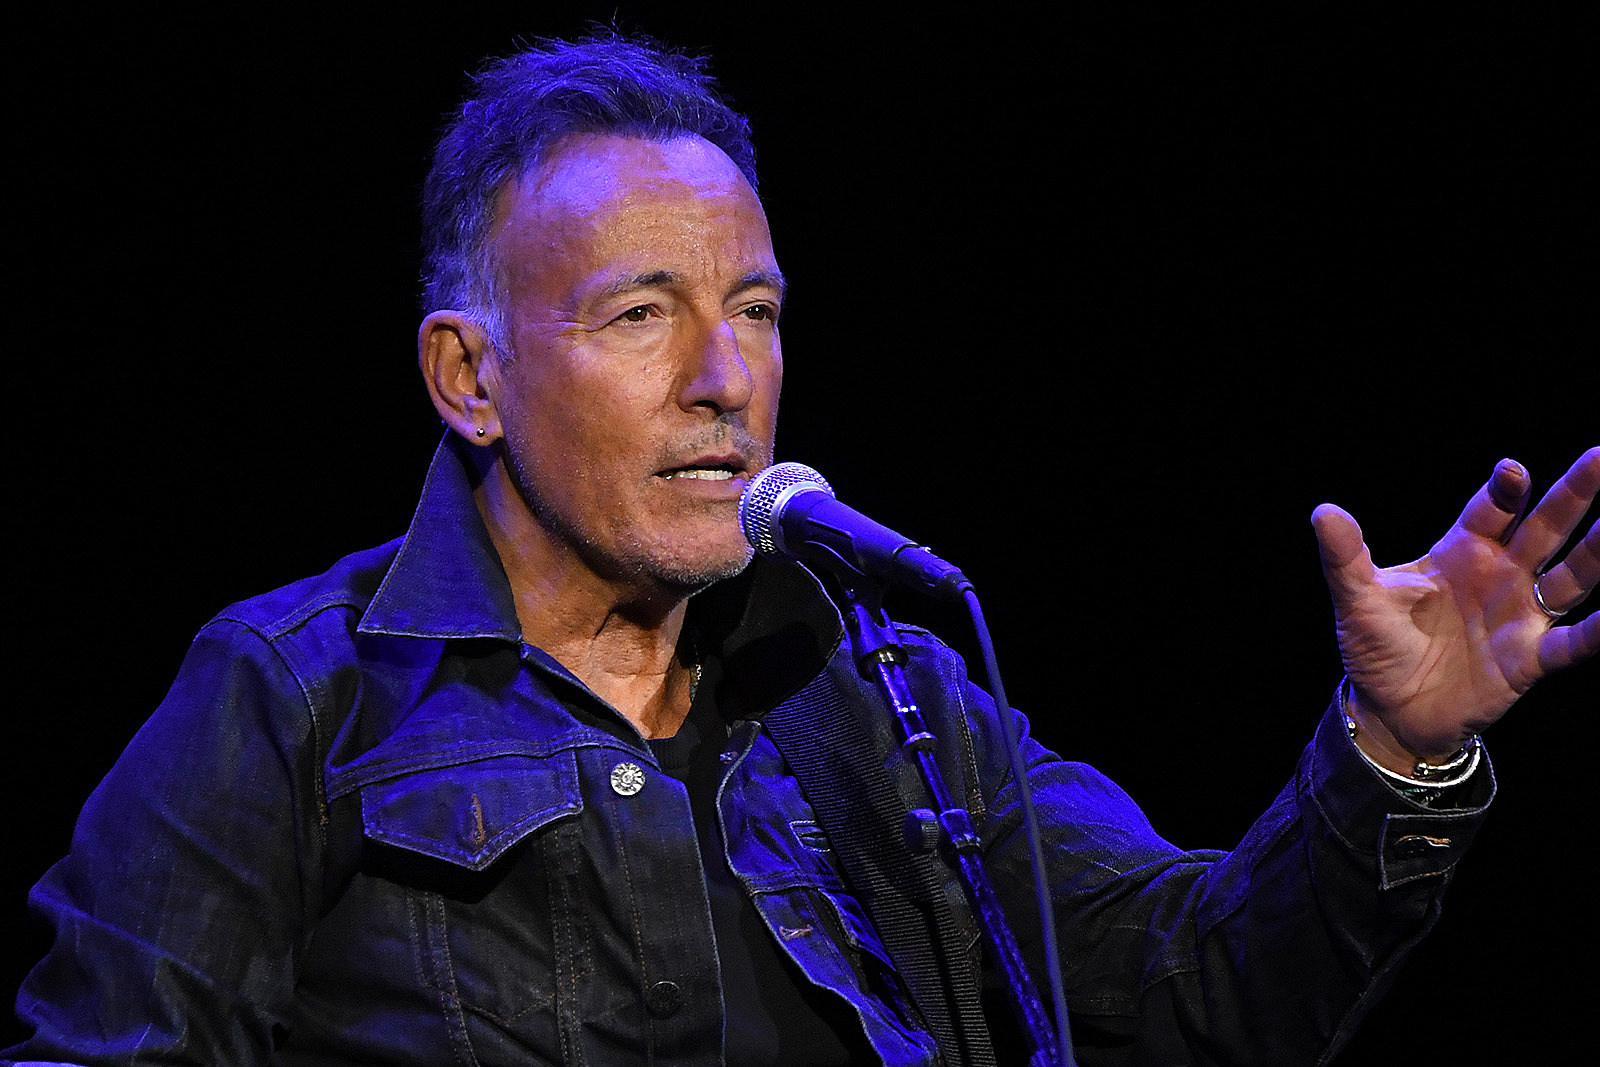 When Bruce Springsteen First Heard Himself on the Radio